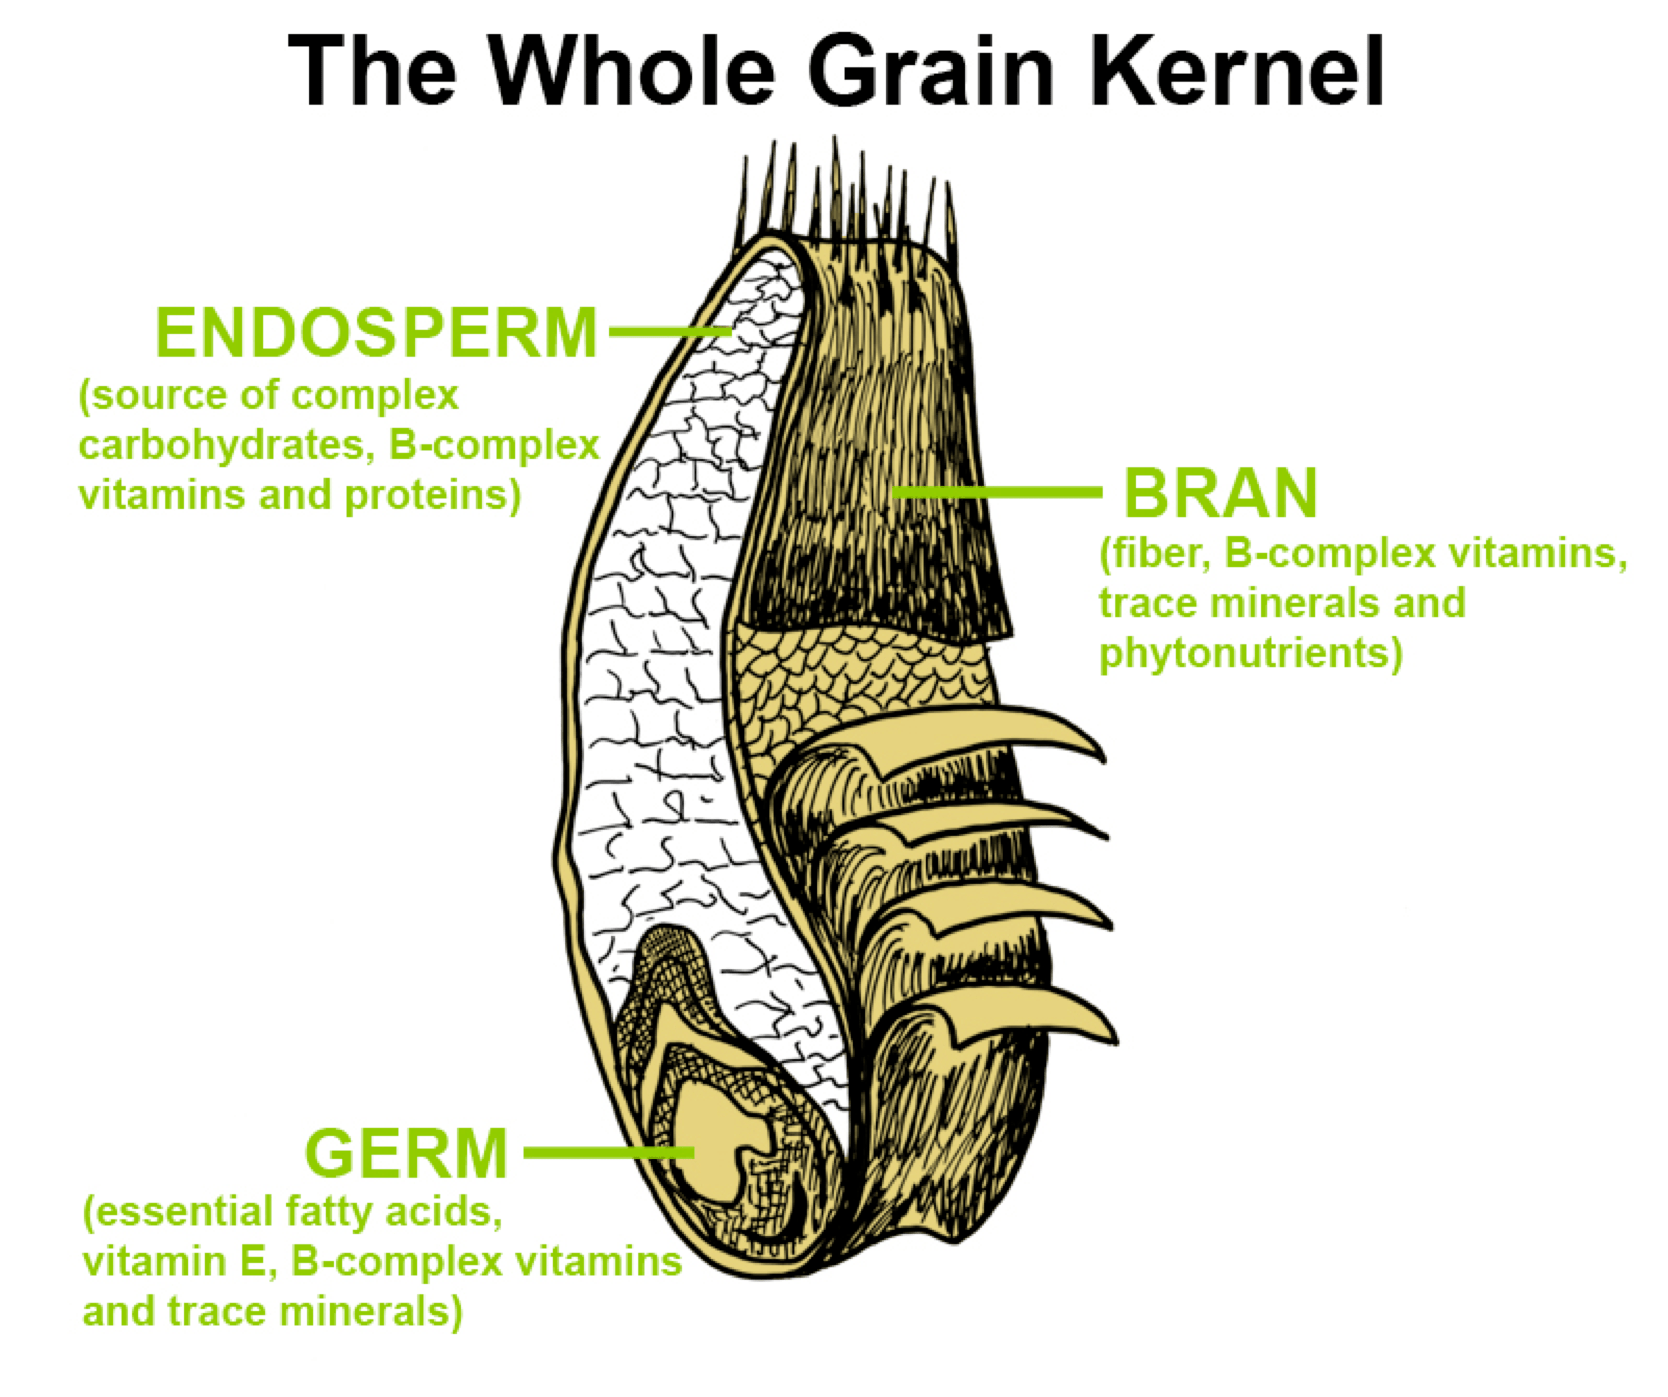 grain kernel diagram compu fire ignition wiring the whole mypyramid grains pinterest